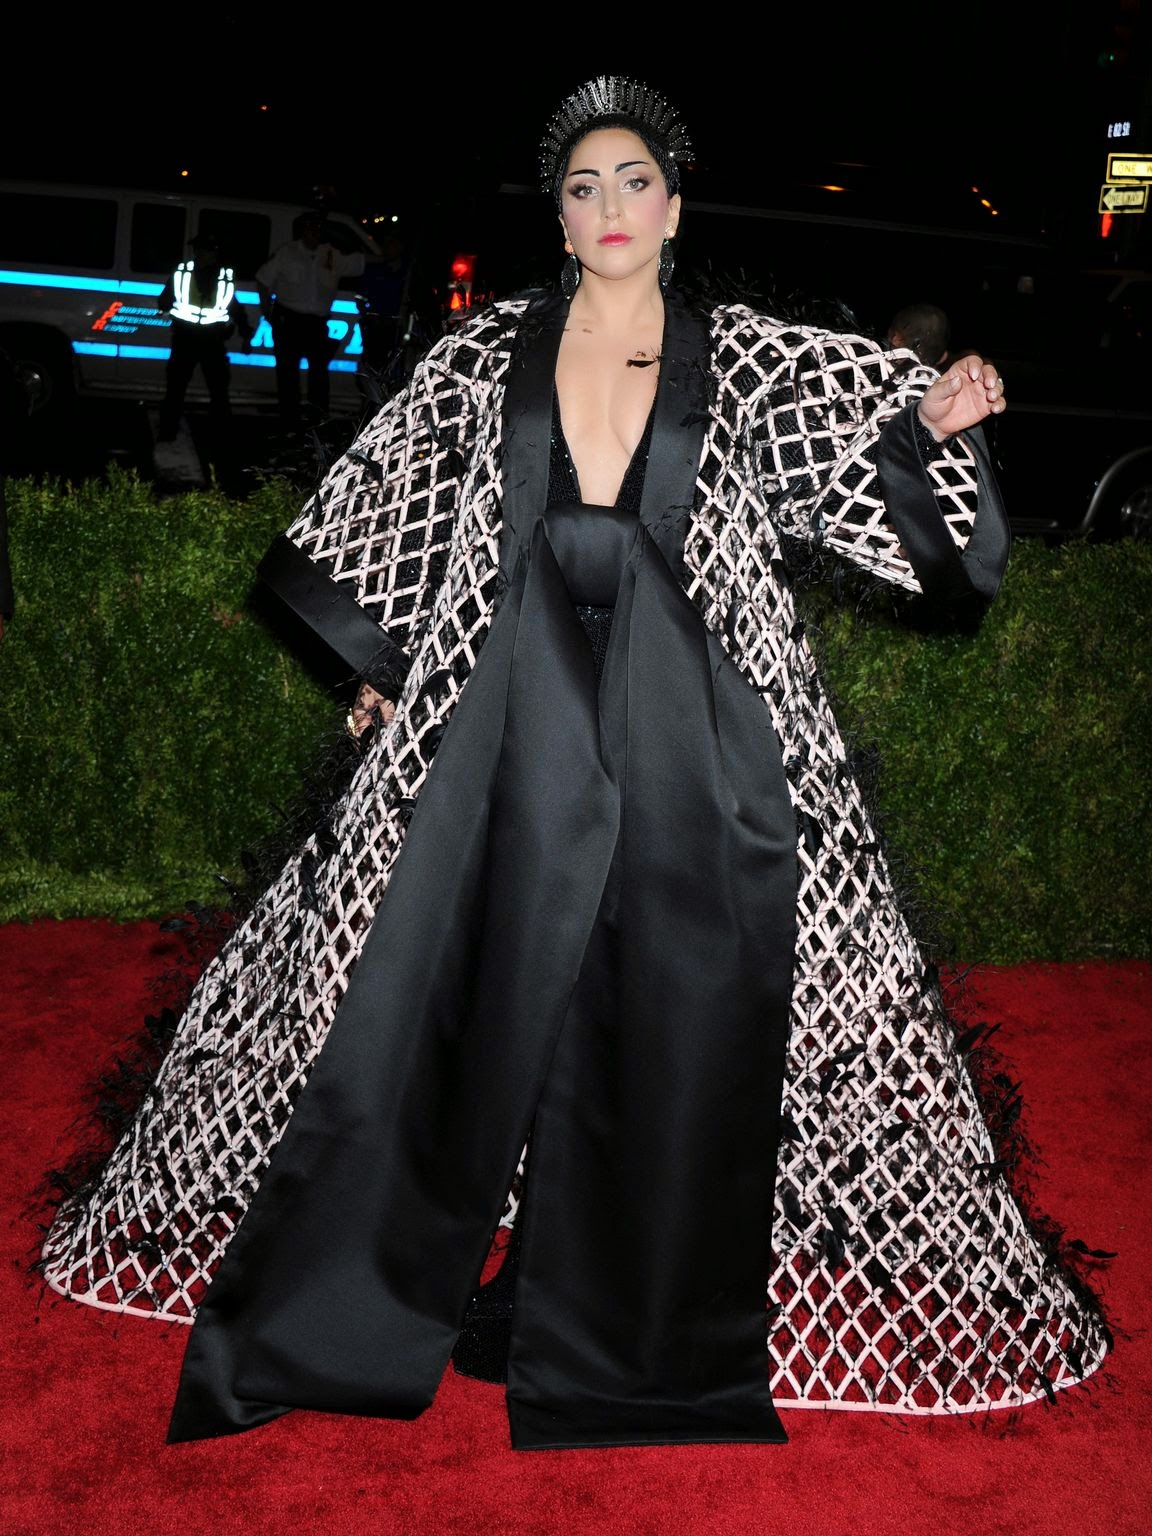 Lady Gaga wears a dramatic Balenciaga ensemble to the 2015 Met Gala